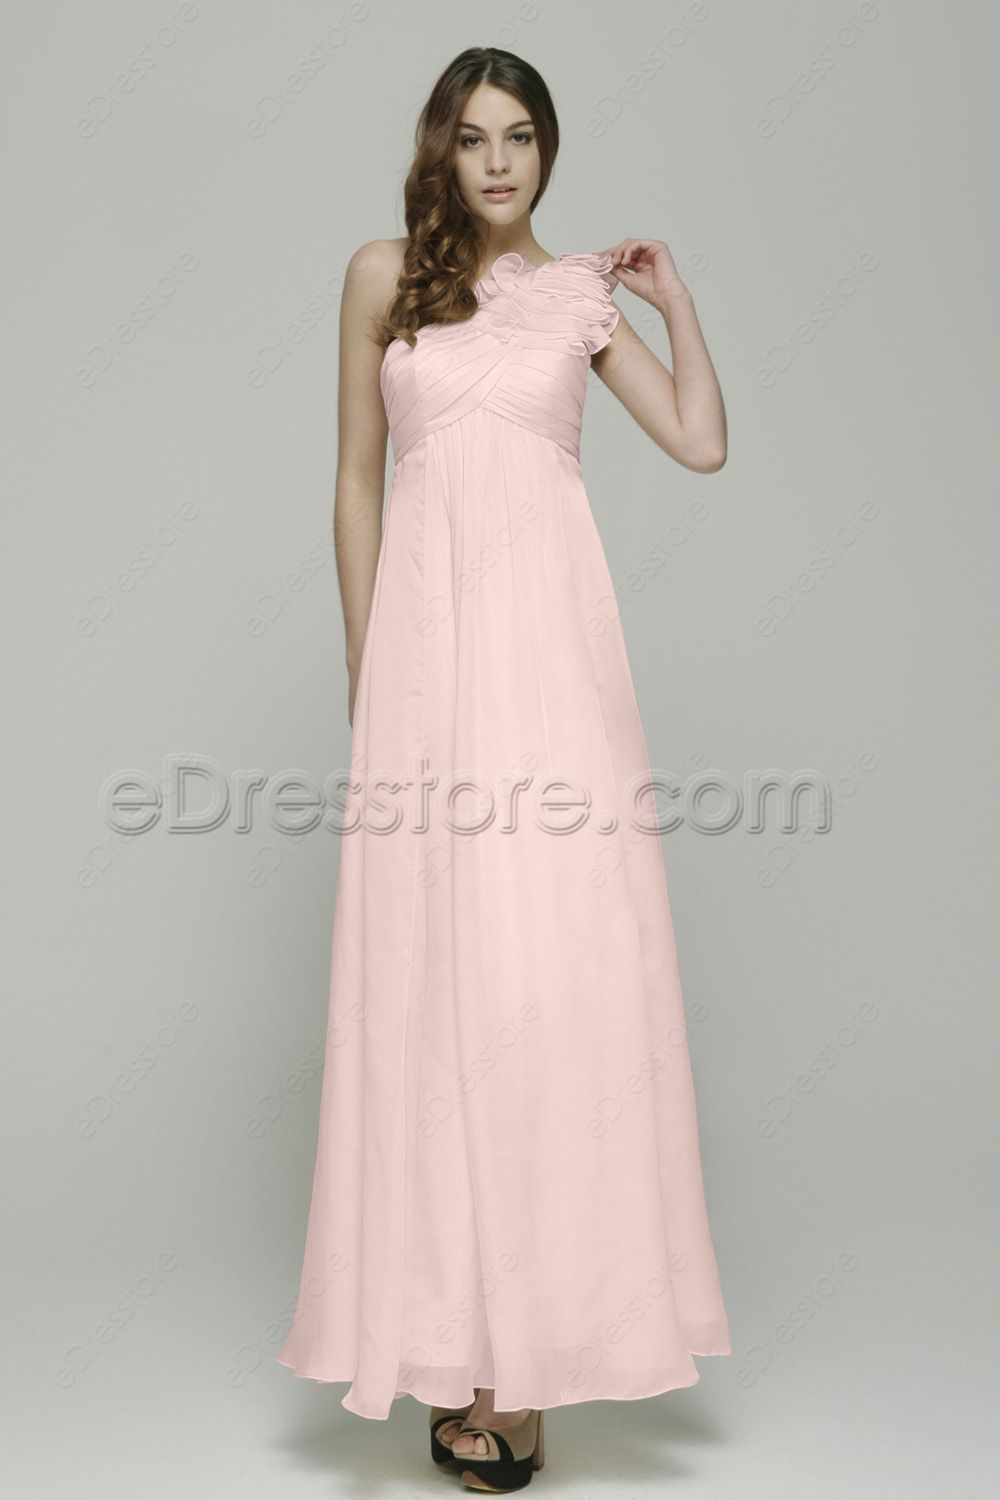 Pink long maternity bridesmaid dresses maternity bridesmaid pink long maternity bridesmaid dresses ombrellifo Gallery